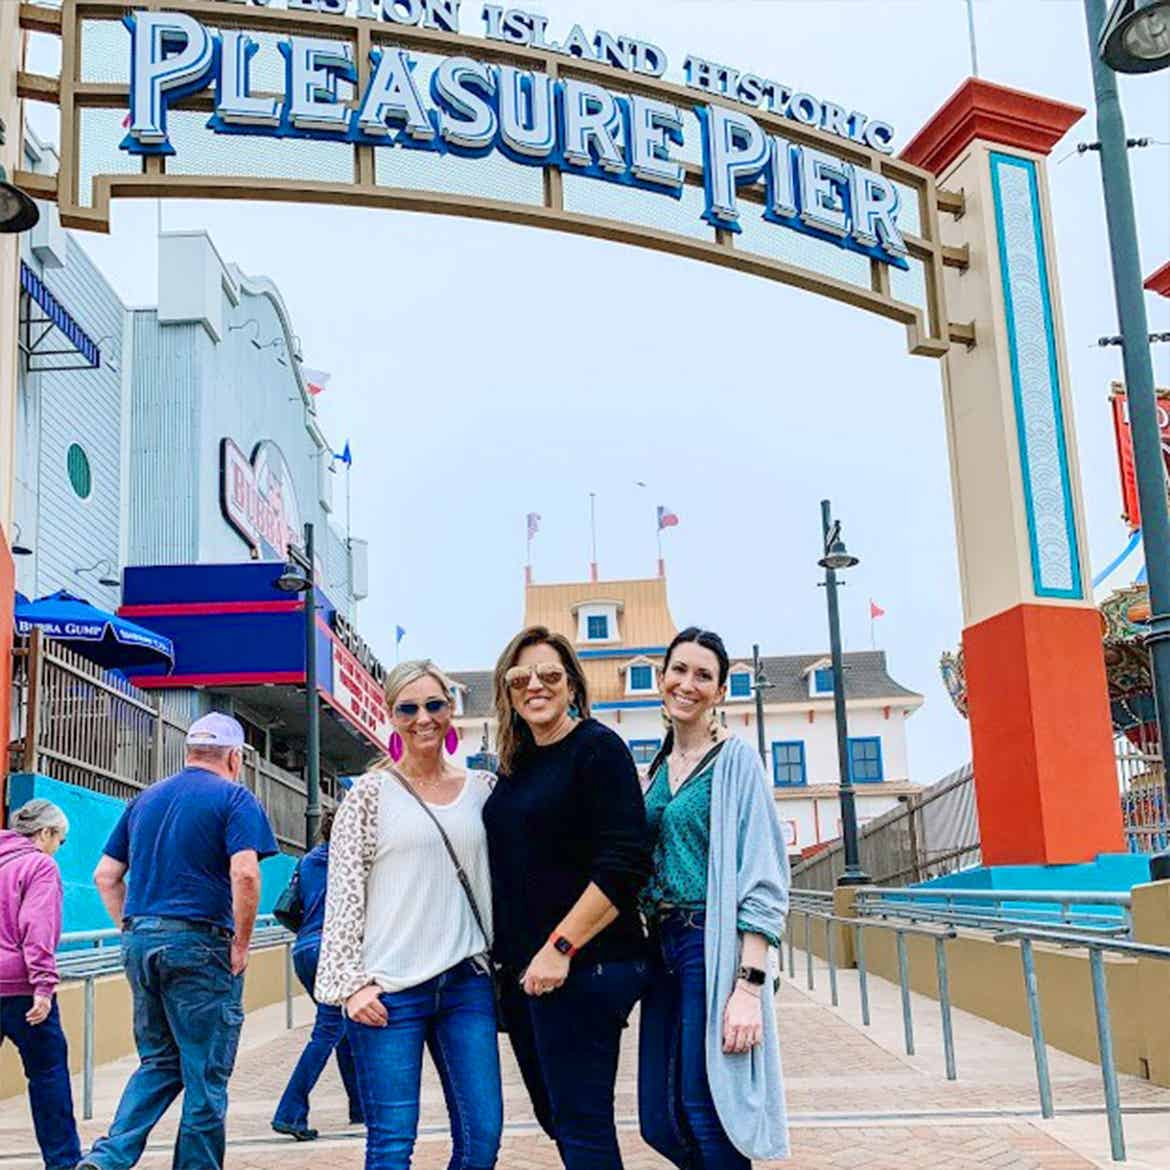 Featured Contributor, Amanda Nall (left) poses with her two friends in front of the Paradise Pier in Galveston, Tx.